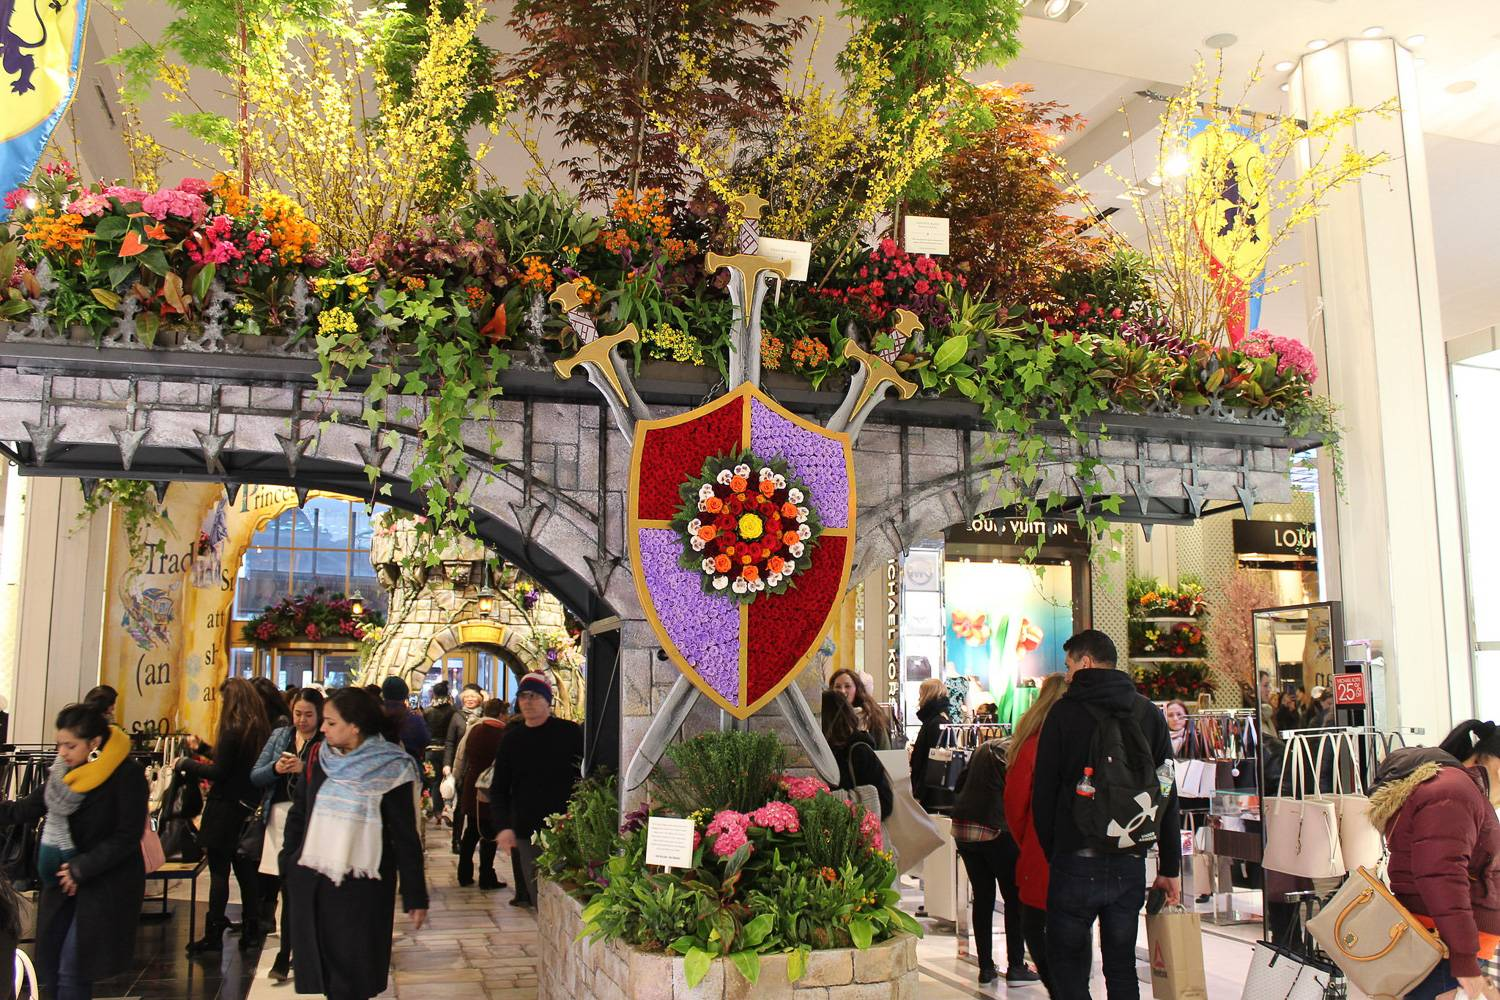 Image of a display in the medieval-themed 2018 Macy's Flower Show.